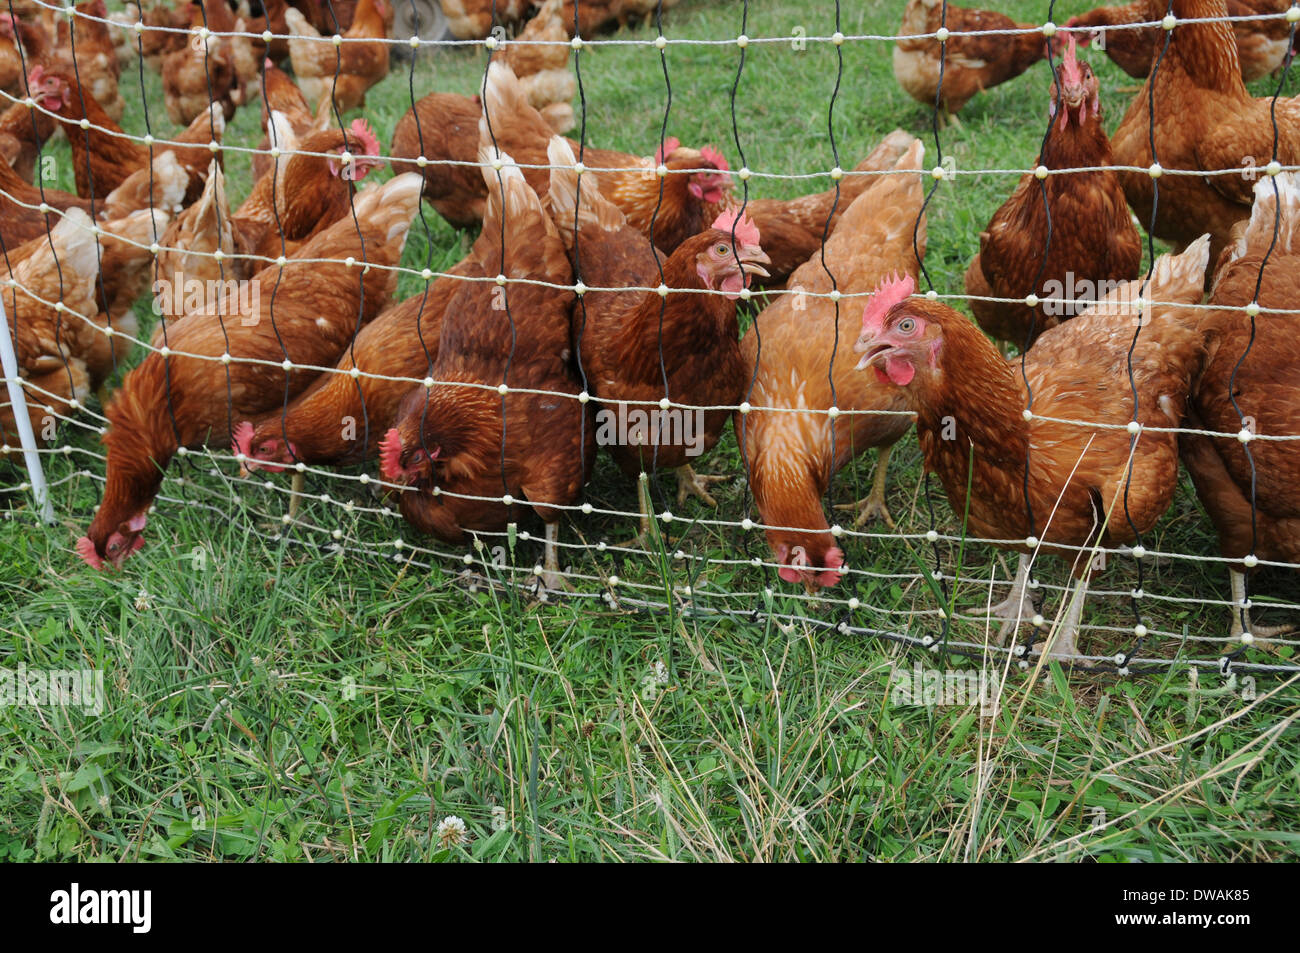 Free Range Chickens Fence Stock Photos & Free Range Chickens